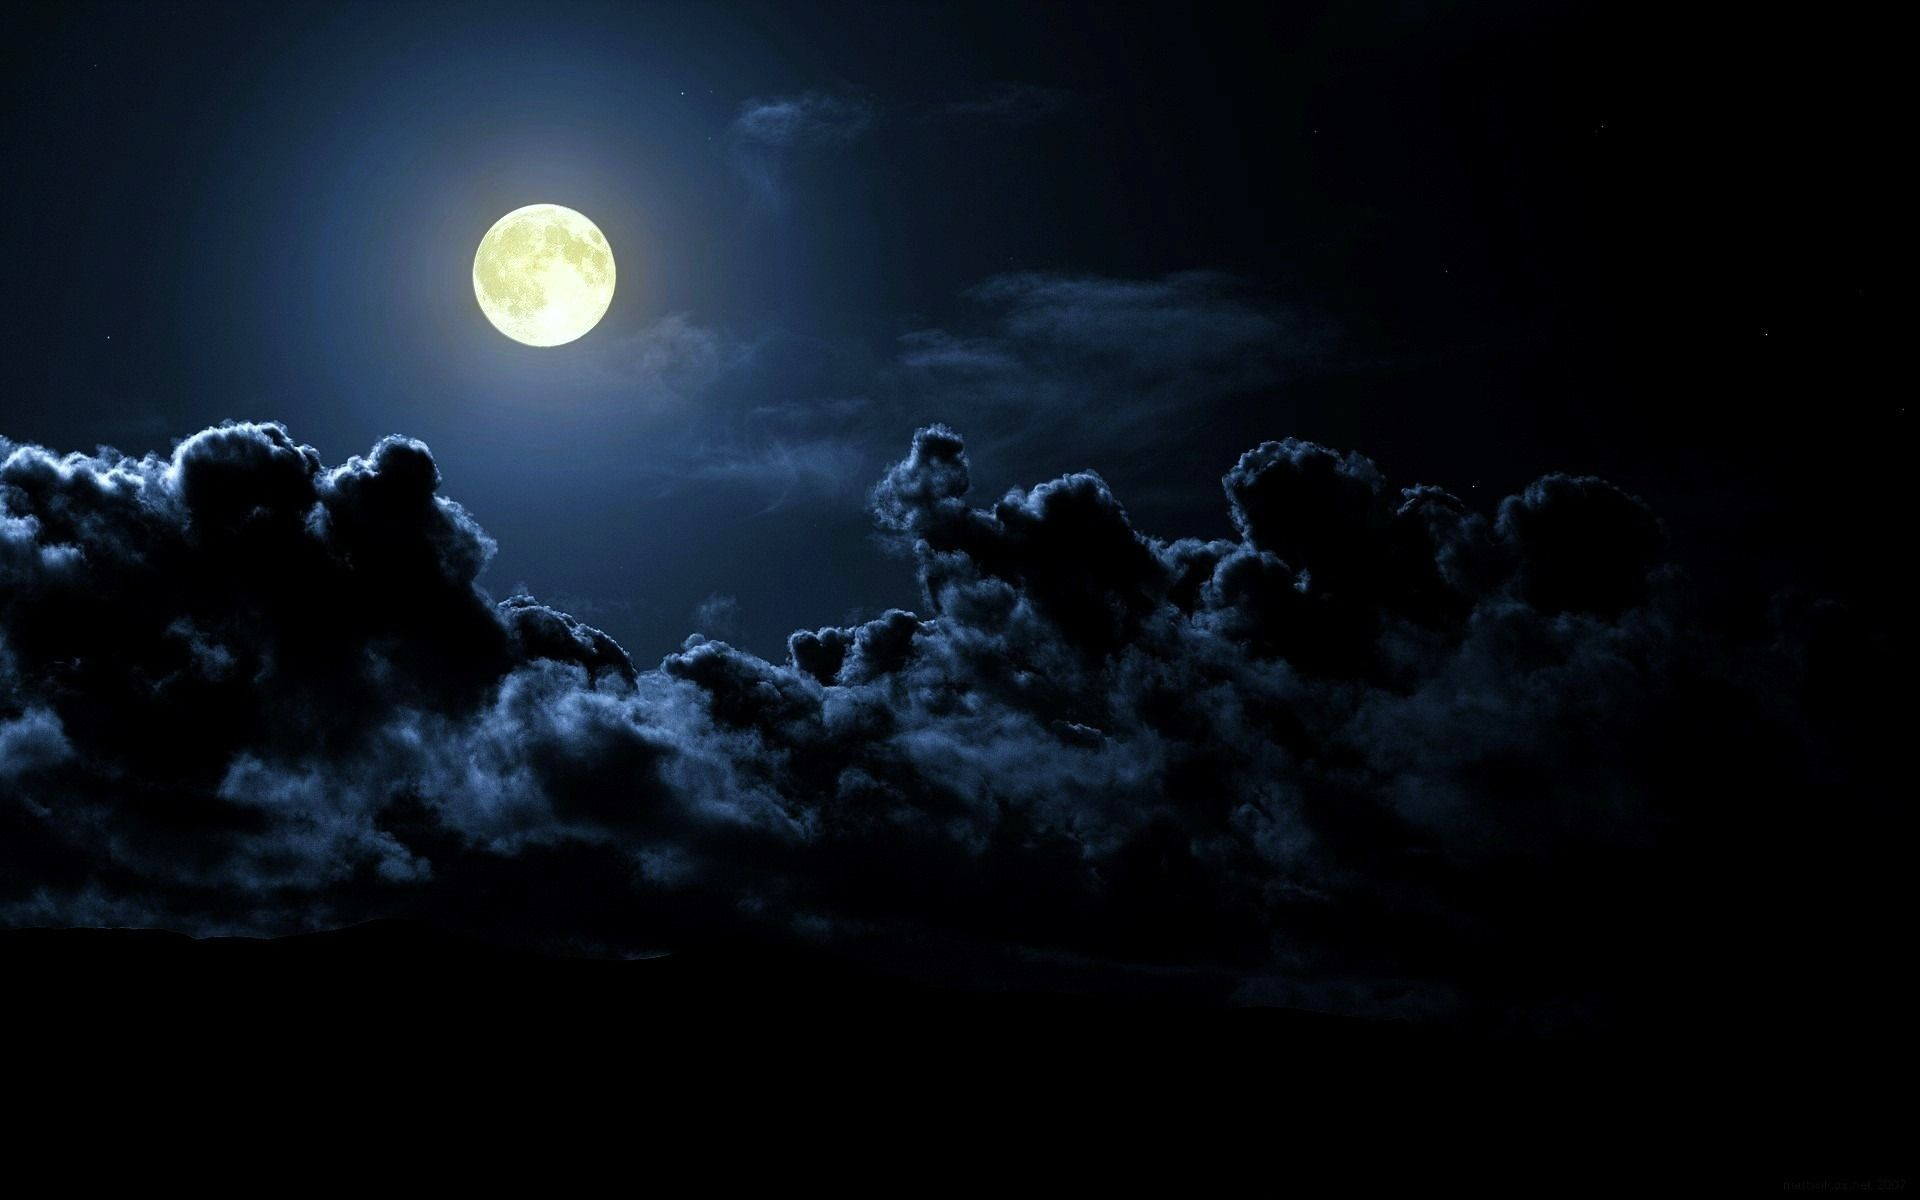 Pc Wallpaper Anime Moon Cloud Night Wallpaper Cloudy